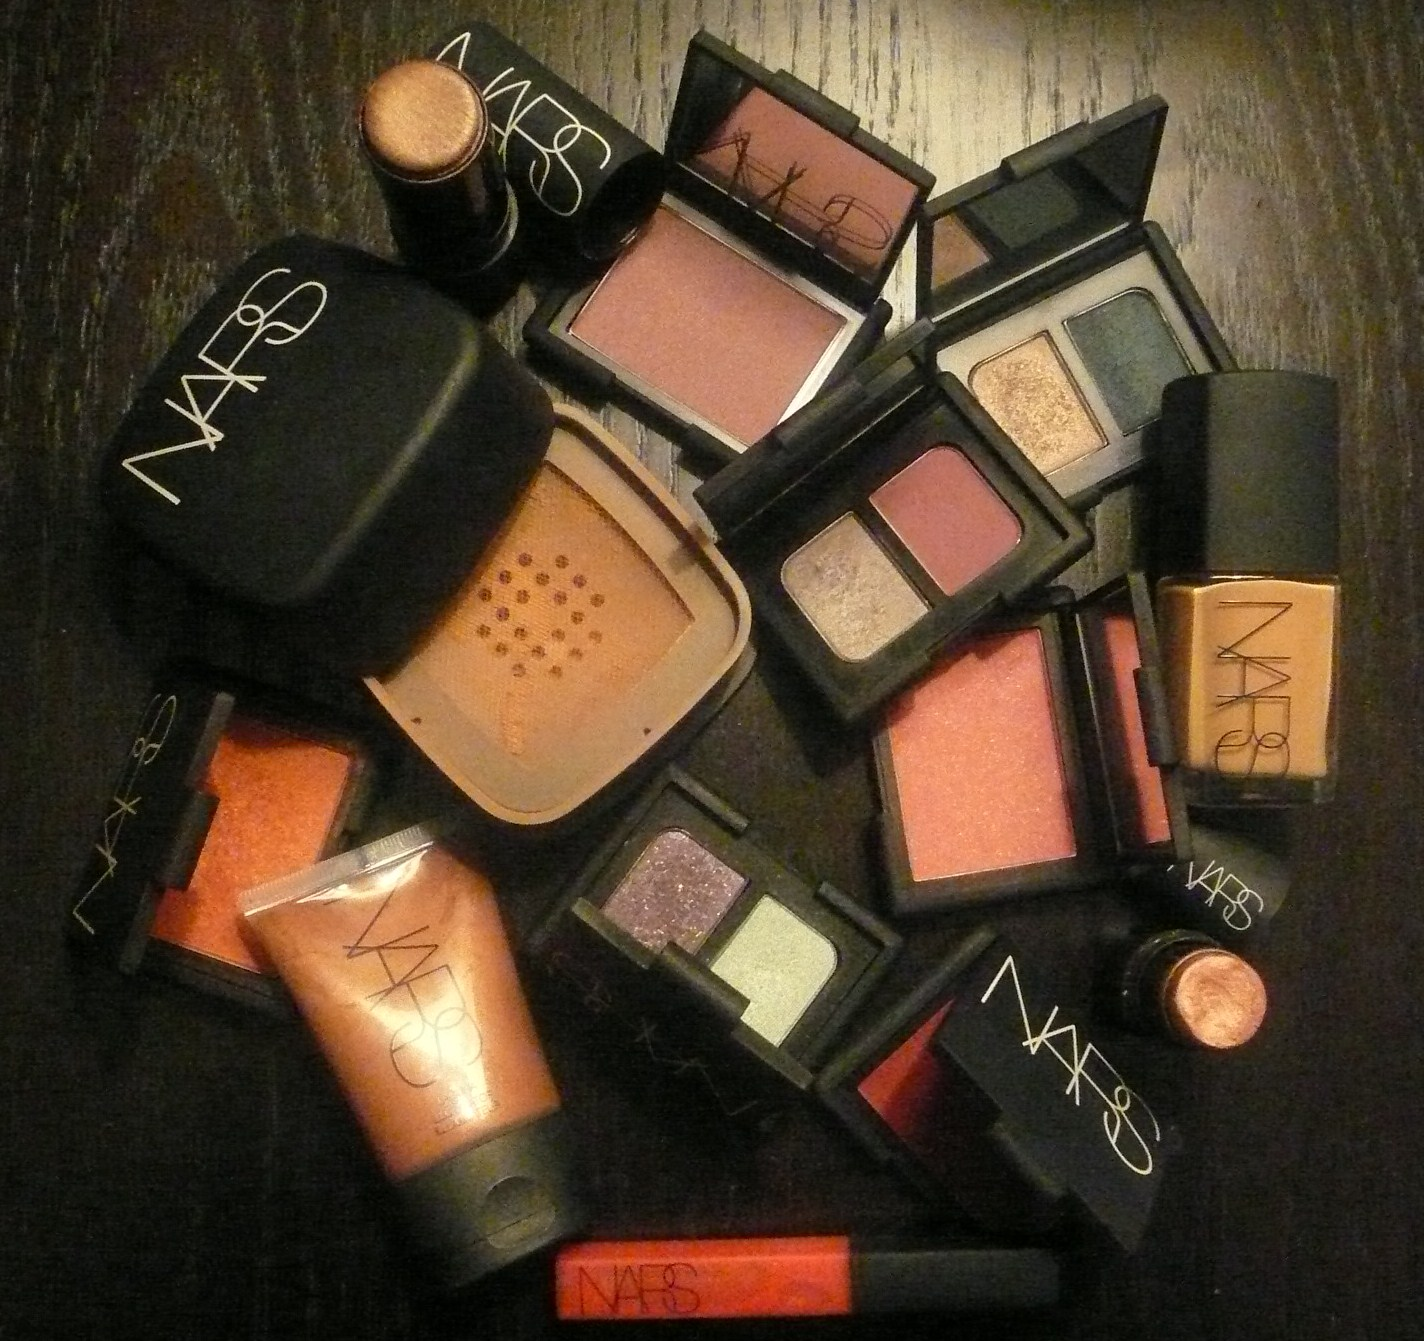 Fall nars makeup collection best photo